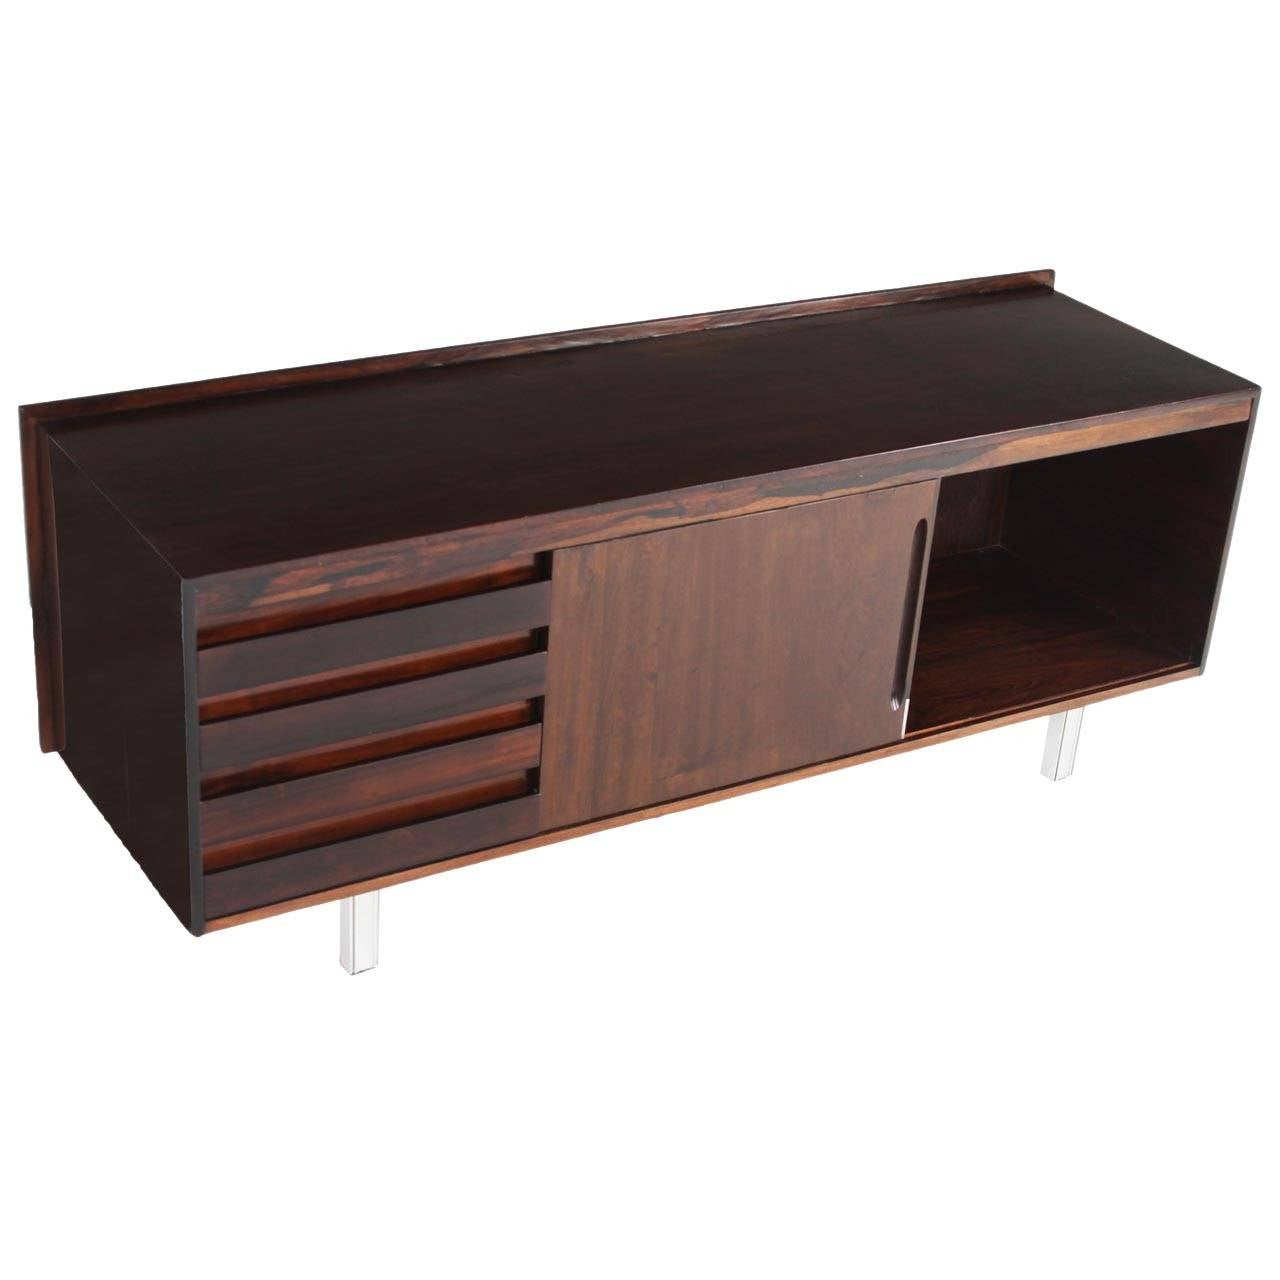 Rosewood Credenza with Chrome Legs from Brazil